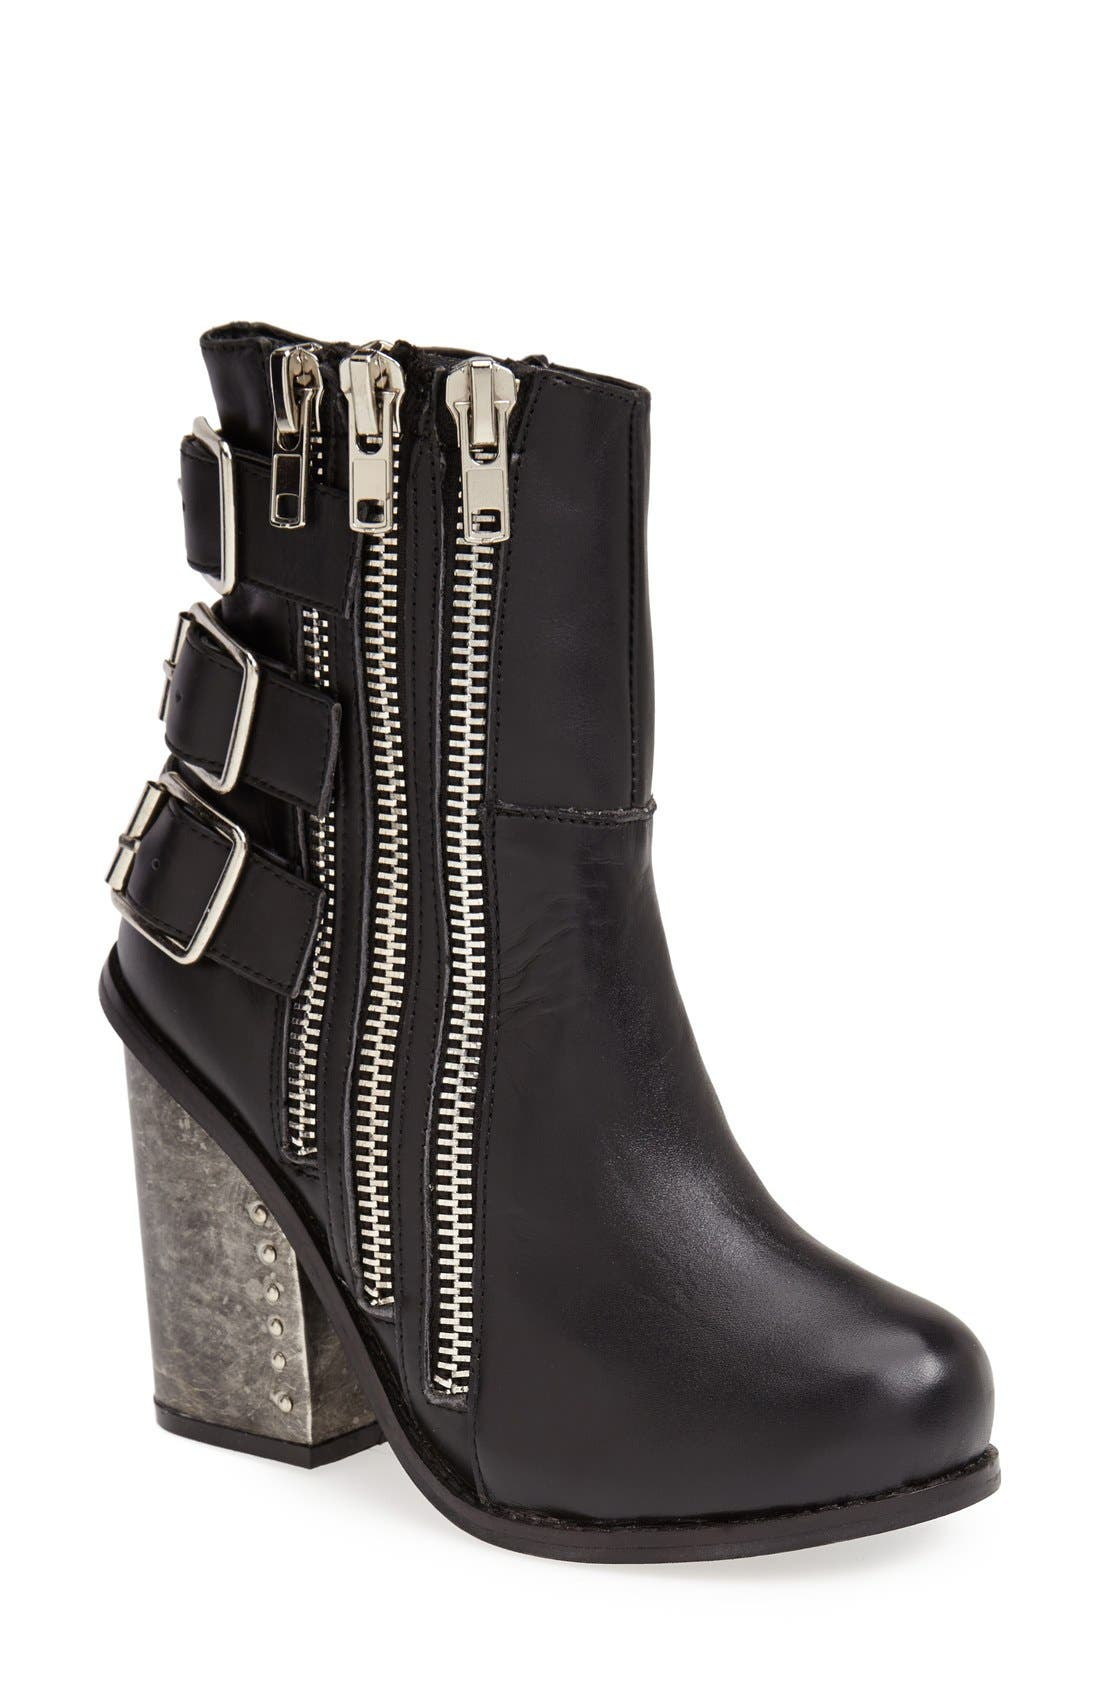 Alternate Image 1 Selected - Jeffrey Campbell 'Lowery' Boot (Women)